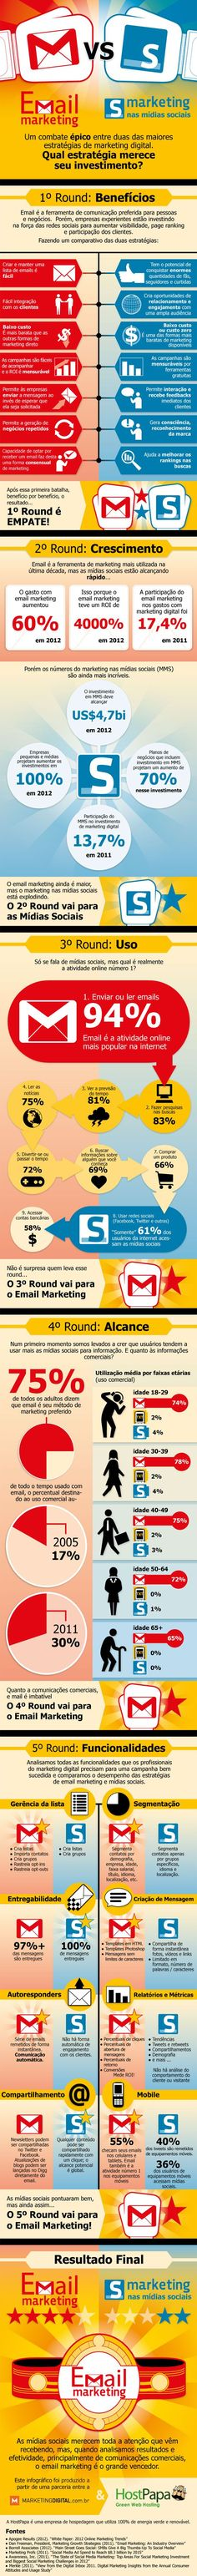 Infográfico: Email Marketing X Marketing nas Mídias Sociais